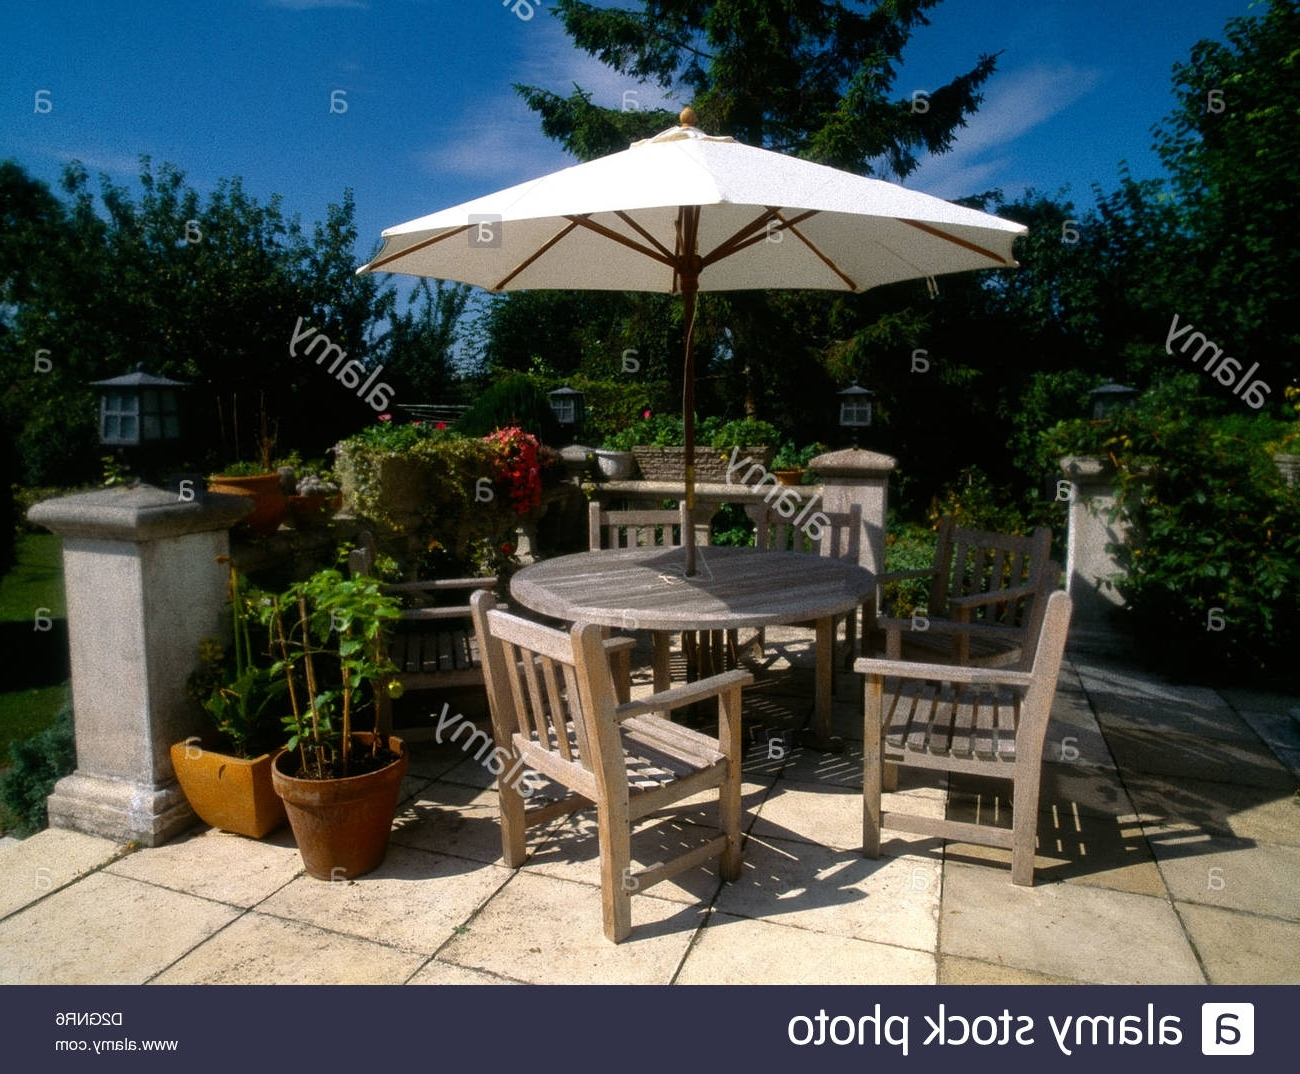 2018 Patio Table And Chairs With Umbrellas Pertaining To Wooden Garden Furniture Table & Chairs & Sun Shade Umbrella Stock (View 16 of 20)